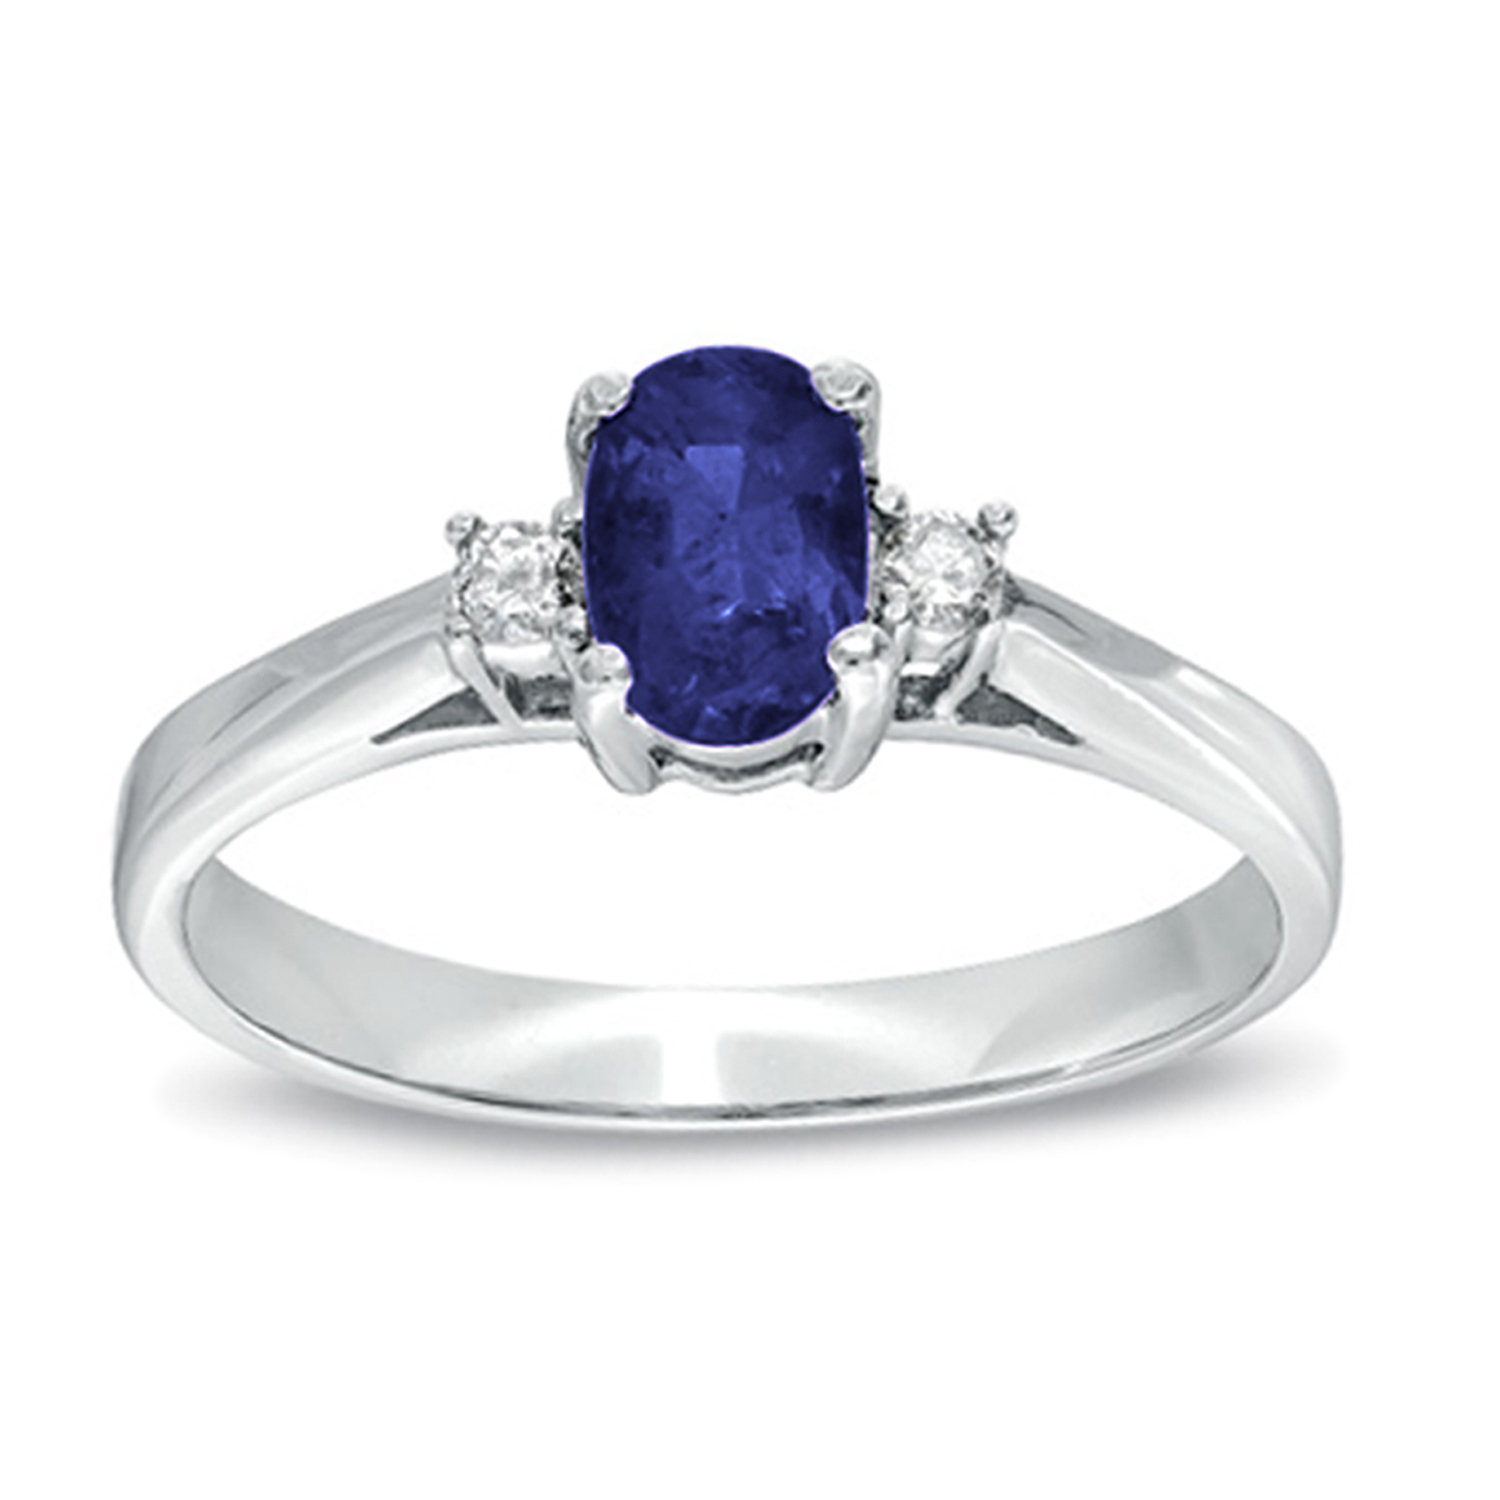 0.53ct tw Sapphire and Diamond Ring set in 14k Gold